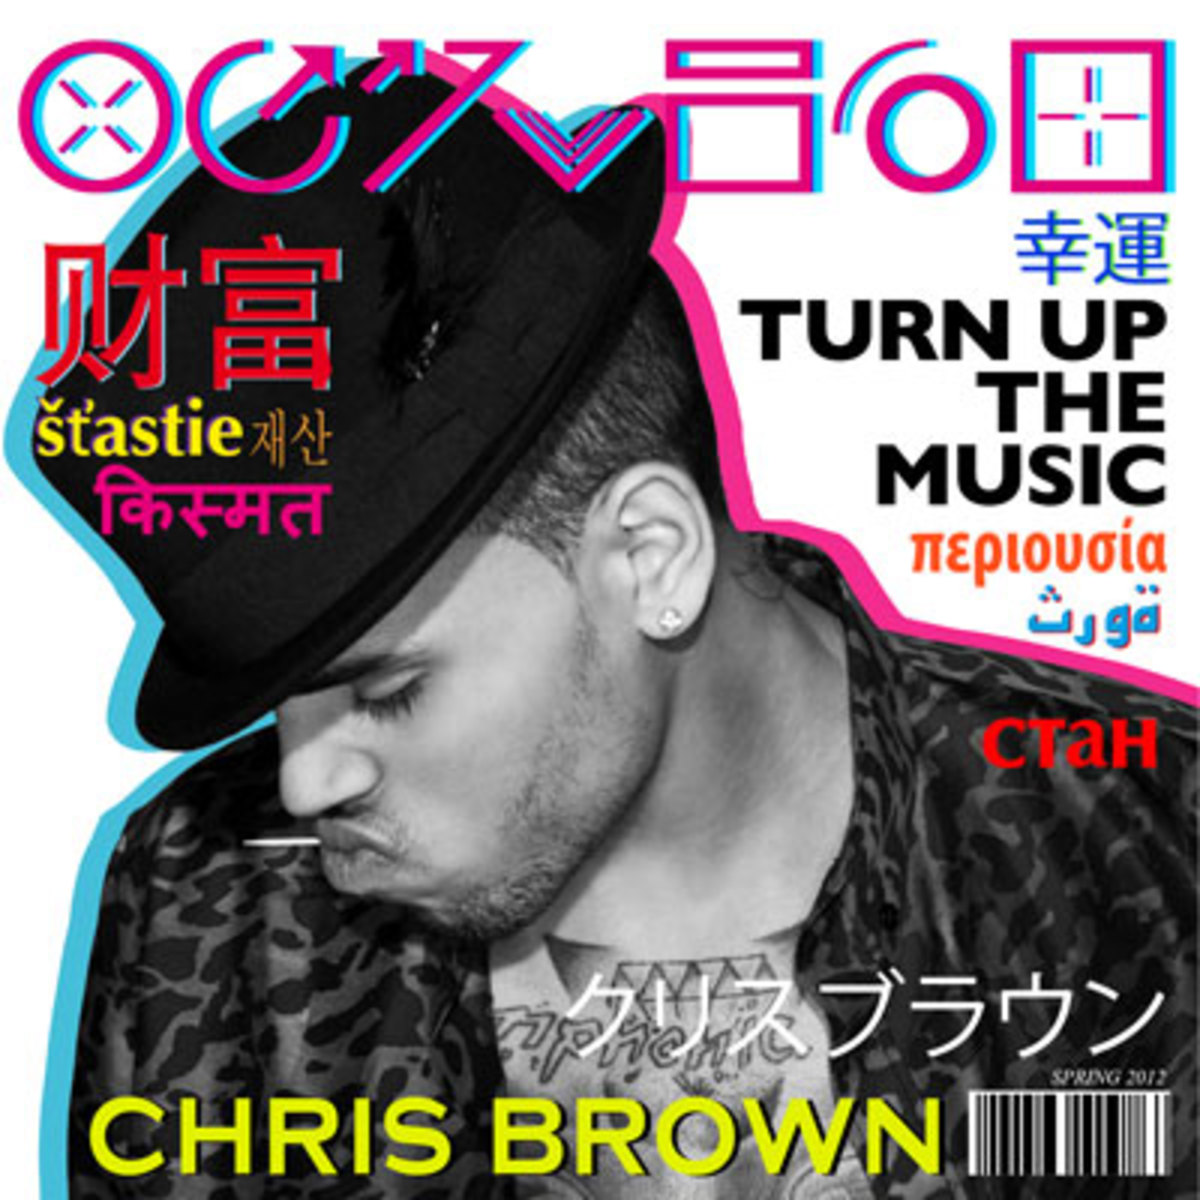 chrisbrown-turnupthemusic.jpg